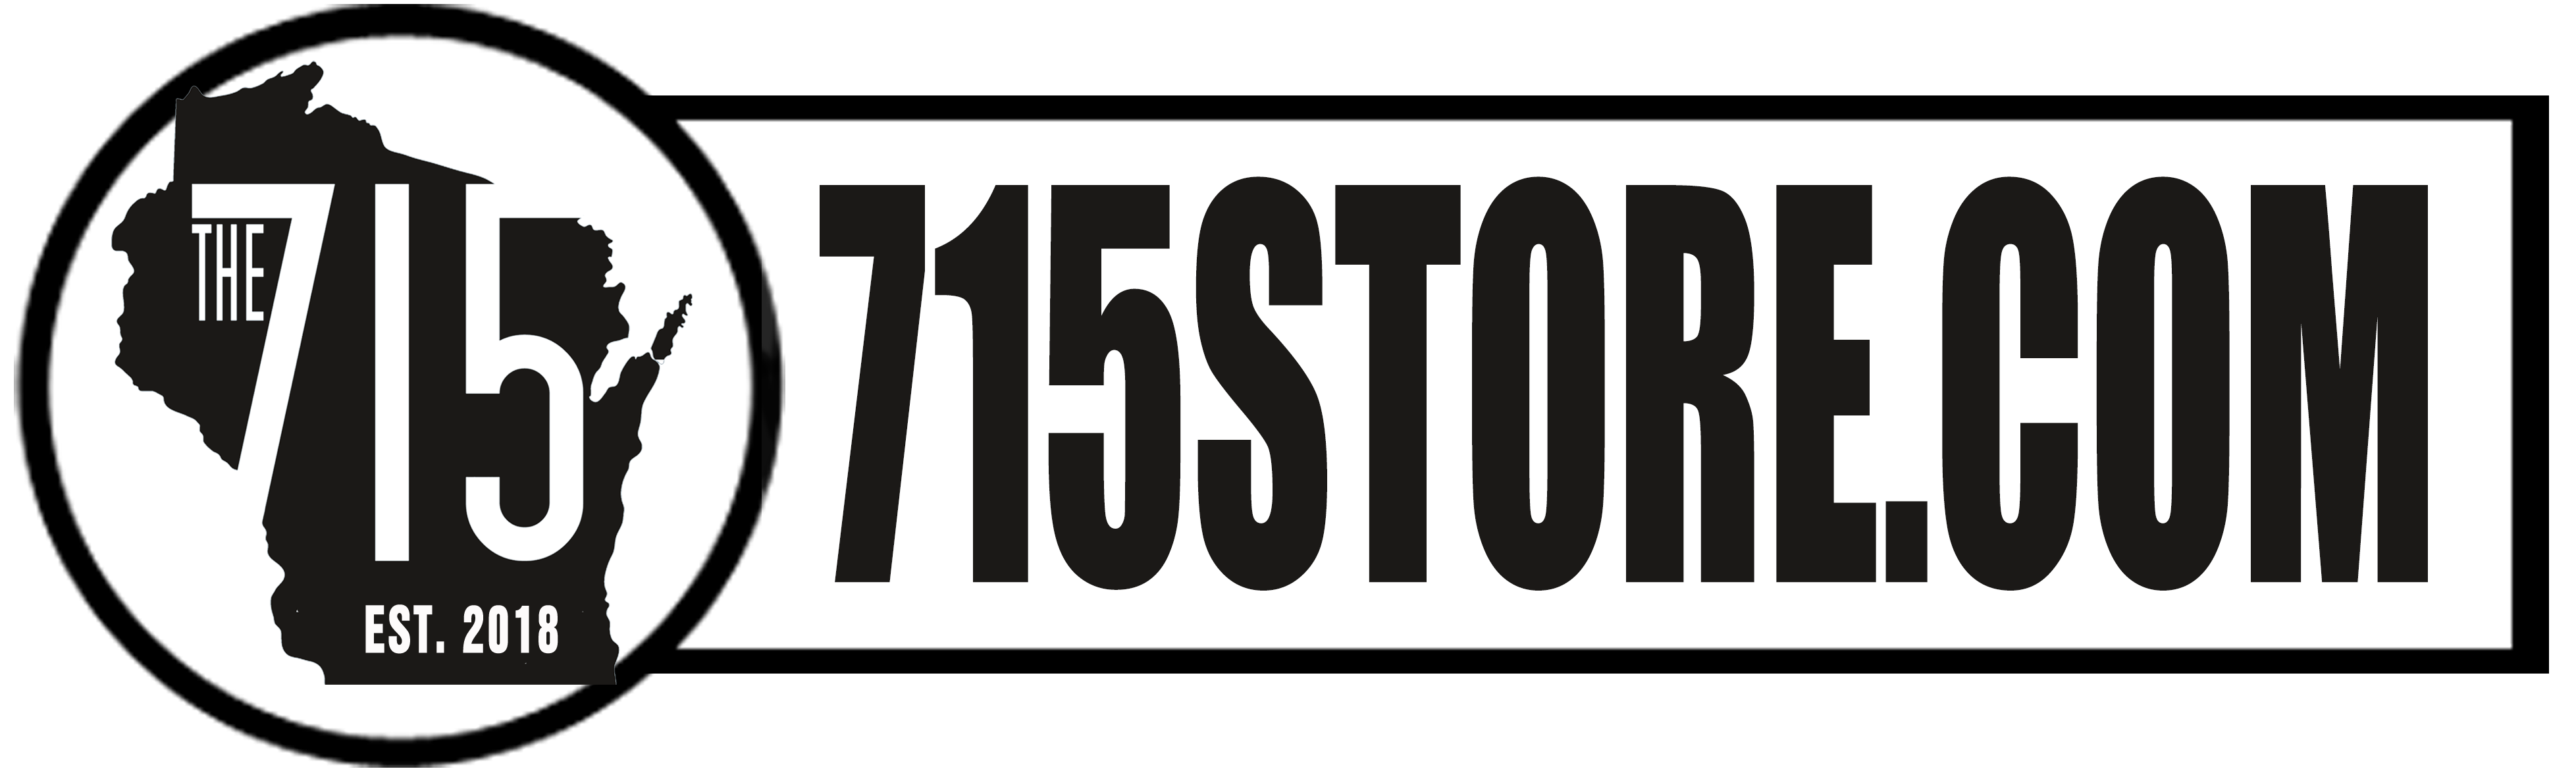 715 Store